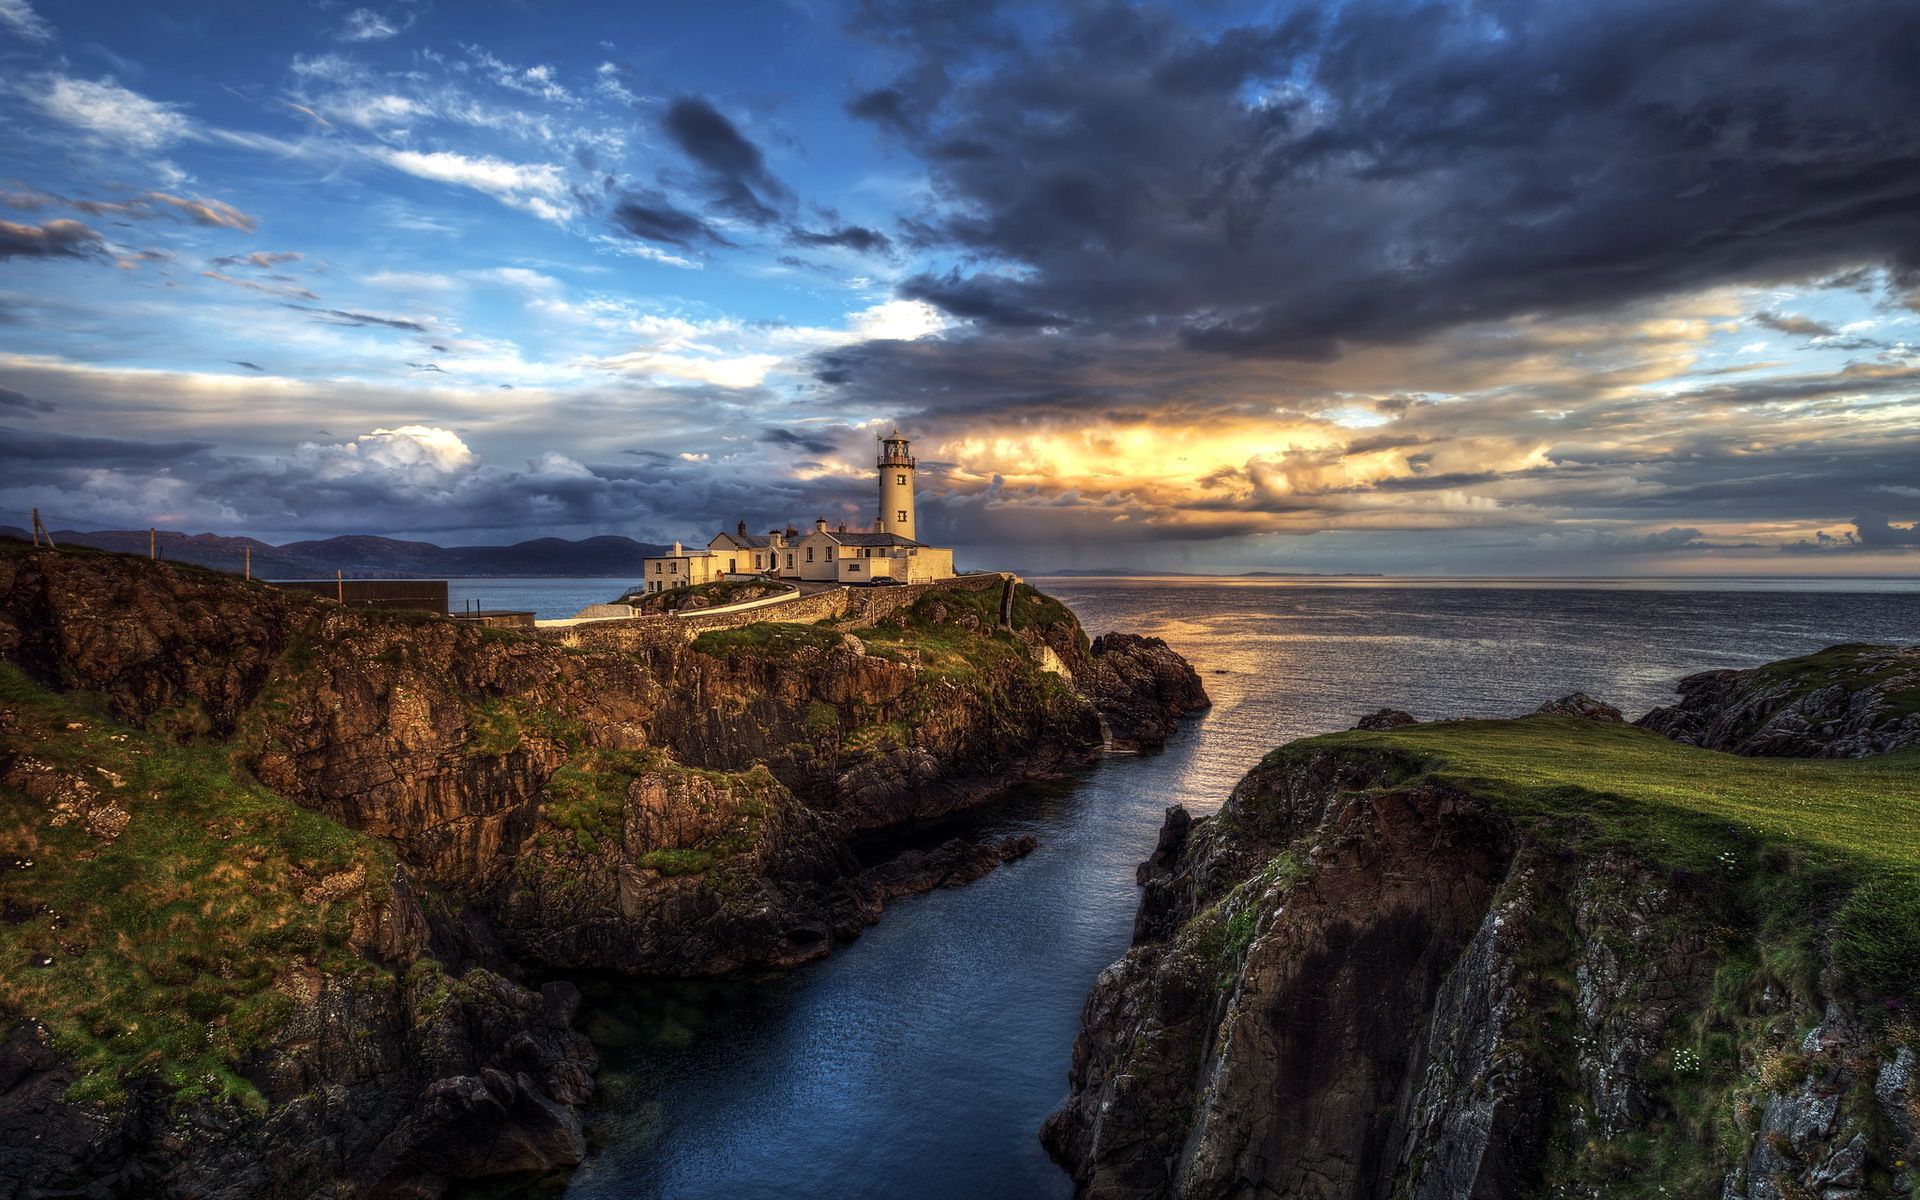 Fanad Head HD Wallpaper 1920x1080 Fanad Head HD Wallpaper 1920x1200 1920x1200